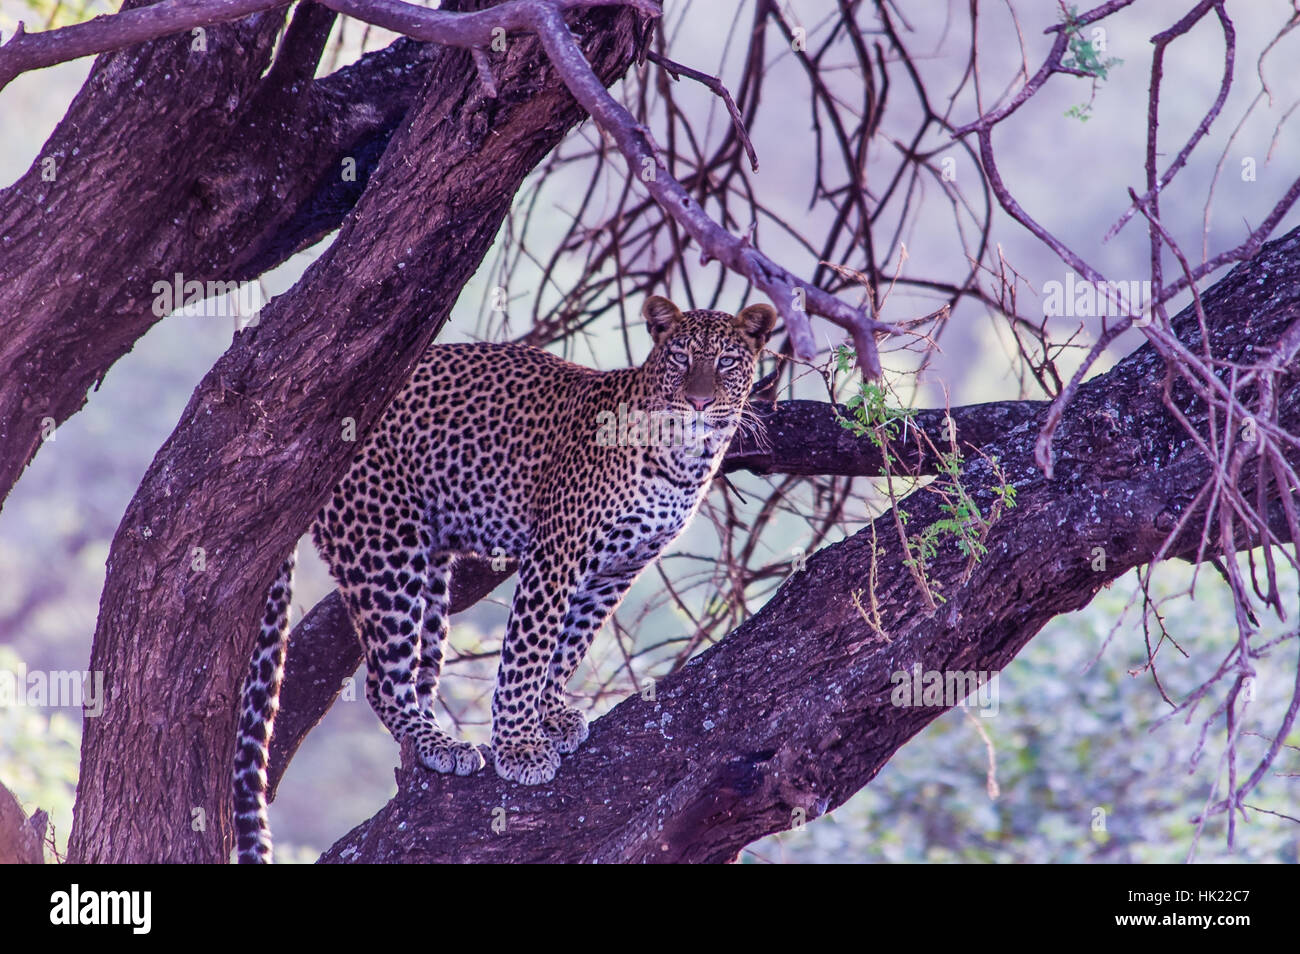 Leopard in a tree - Stock Image